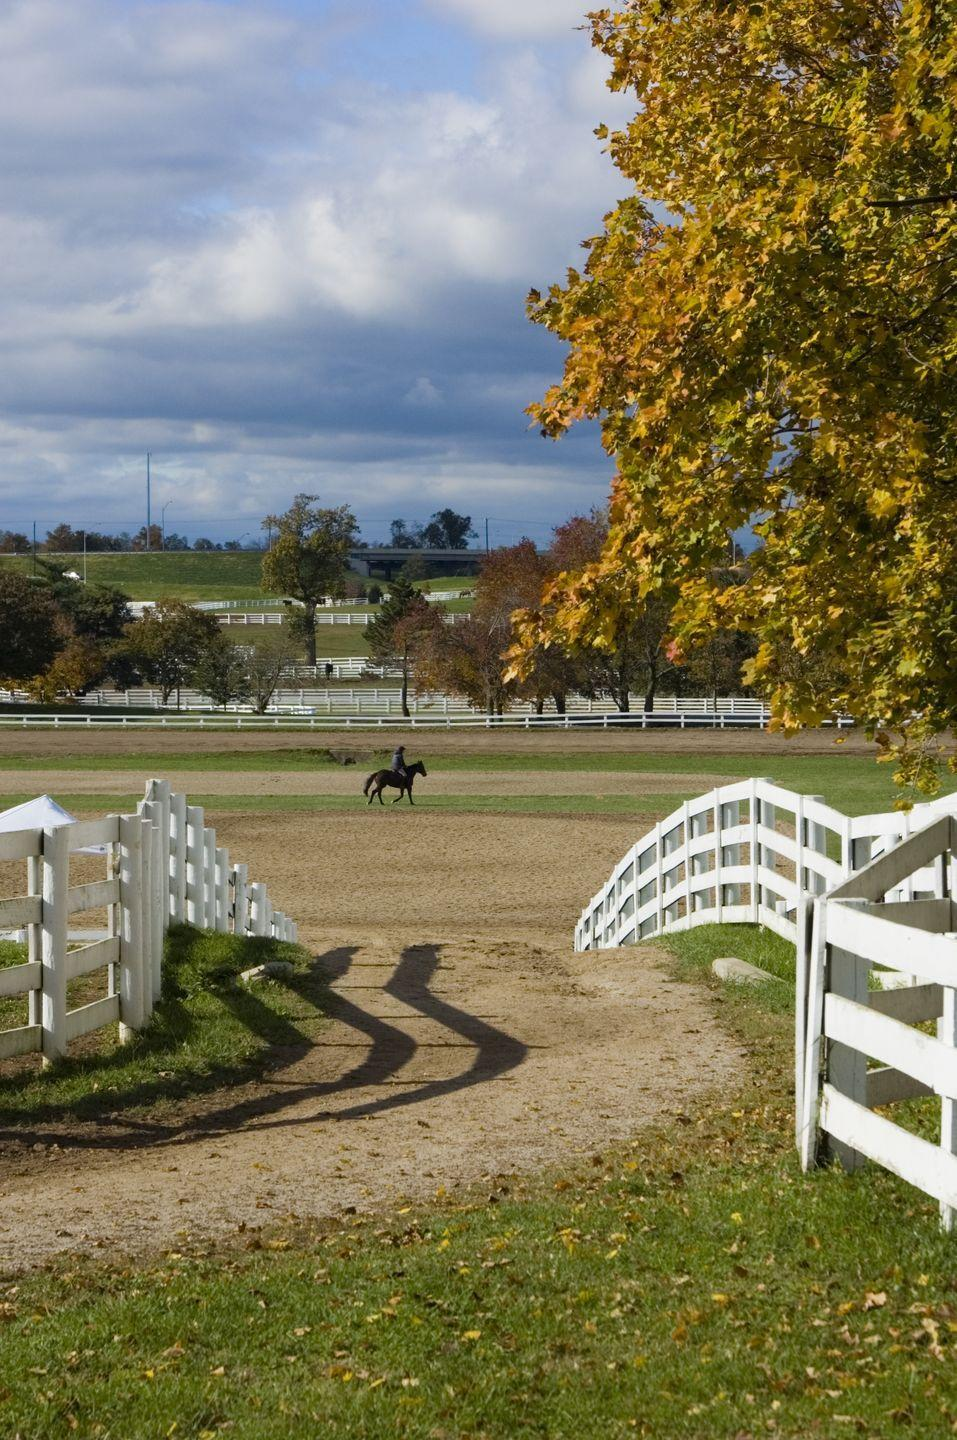 """<p><a href=""""https://visithorsecountry.com"""" rel=""""nofollow noopener"""" target=""""_blank"""" data-ylk=""""slk:Horse Country"""" class=""""link rapid-noclick-resp"""">Horse Country </a>is a great place to learn about the gentle creatures and introduce kids to Equestrianism at their own pace. Book a tour today see what it's all about. Families can visit with mares and foals in the nursery, learn abut horses' nutrition and health at the feed mill and much more.</p>"""